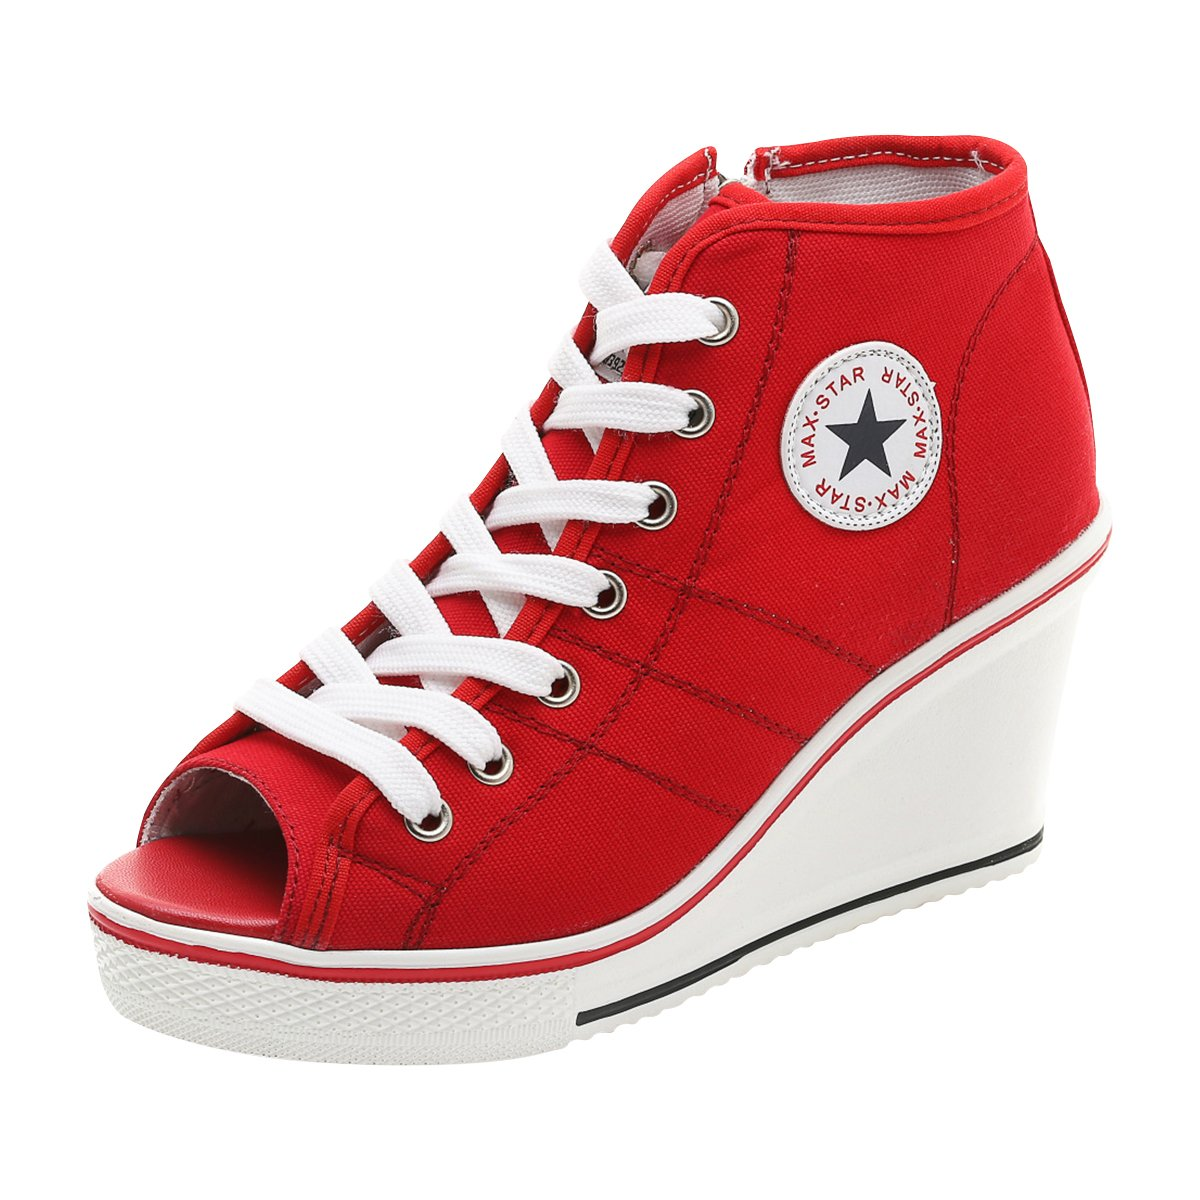 Padgene Women's Canvas High-Heeled Shoes Lace Up Fashion Sneakers Platform Wedges Pump Shoes B07BTT61XD 5 B(M) US Red